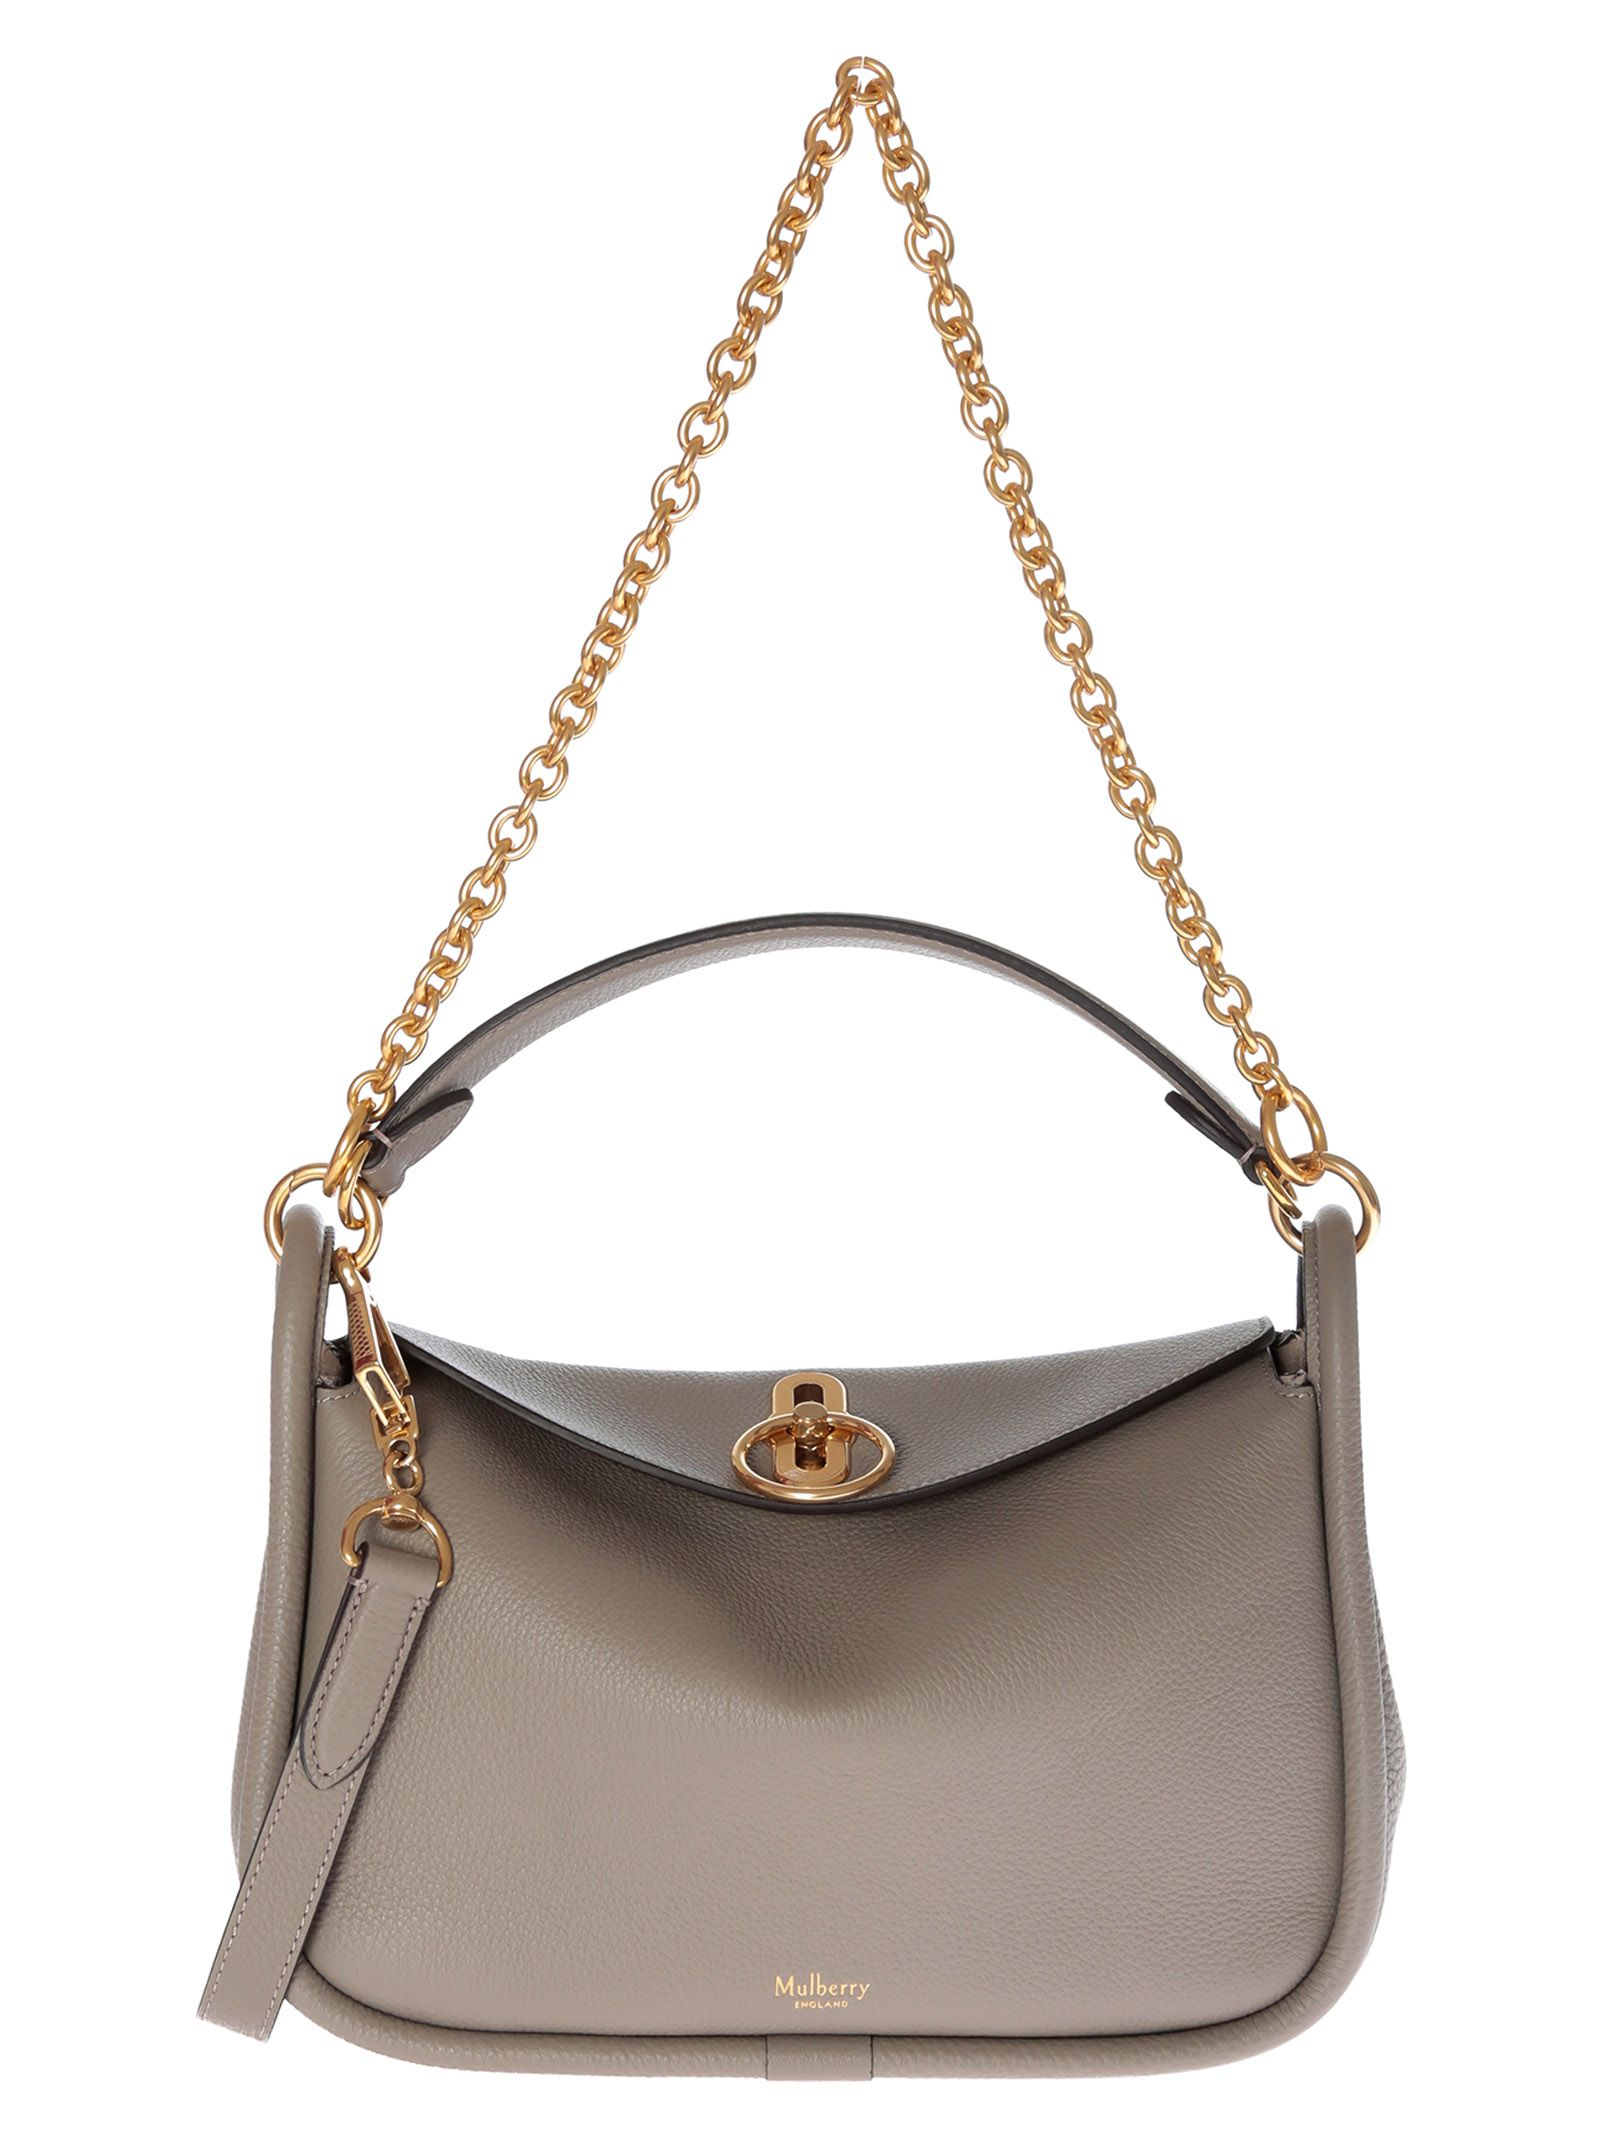 4672d04bf658 Mulberry Mulberry Leighton Small Shoulder Bag - 10816266